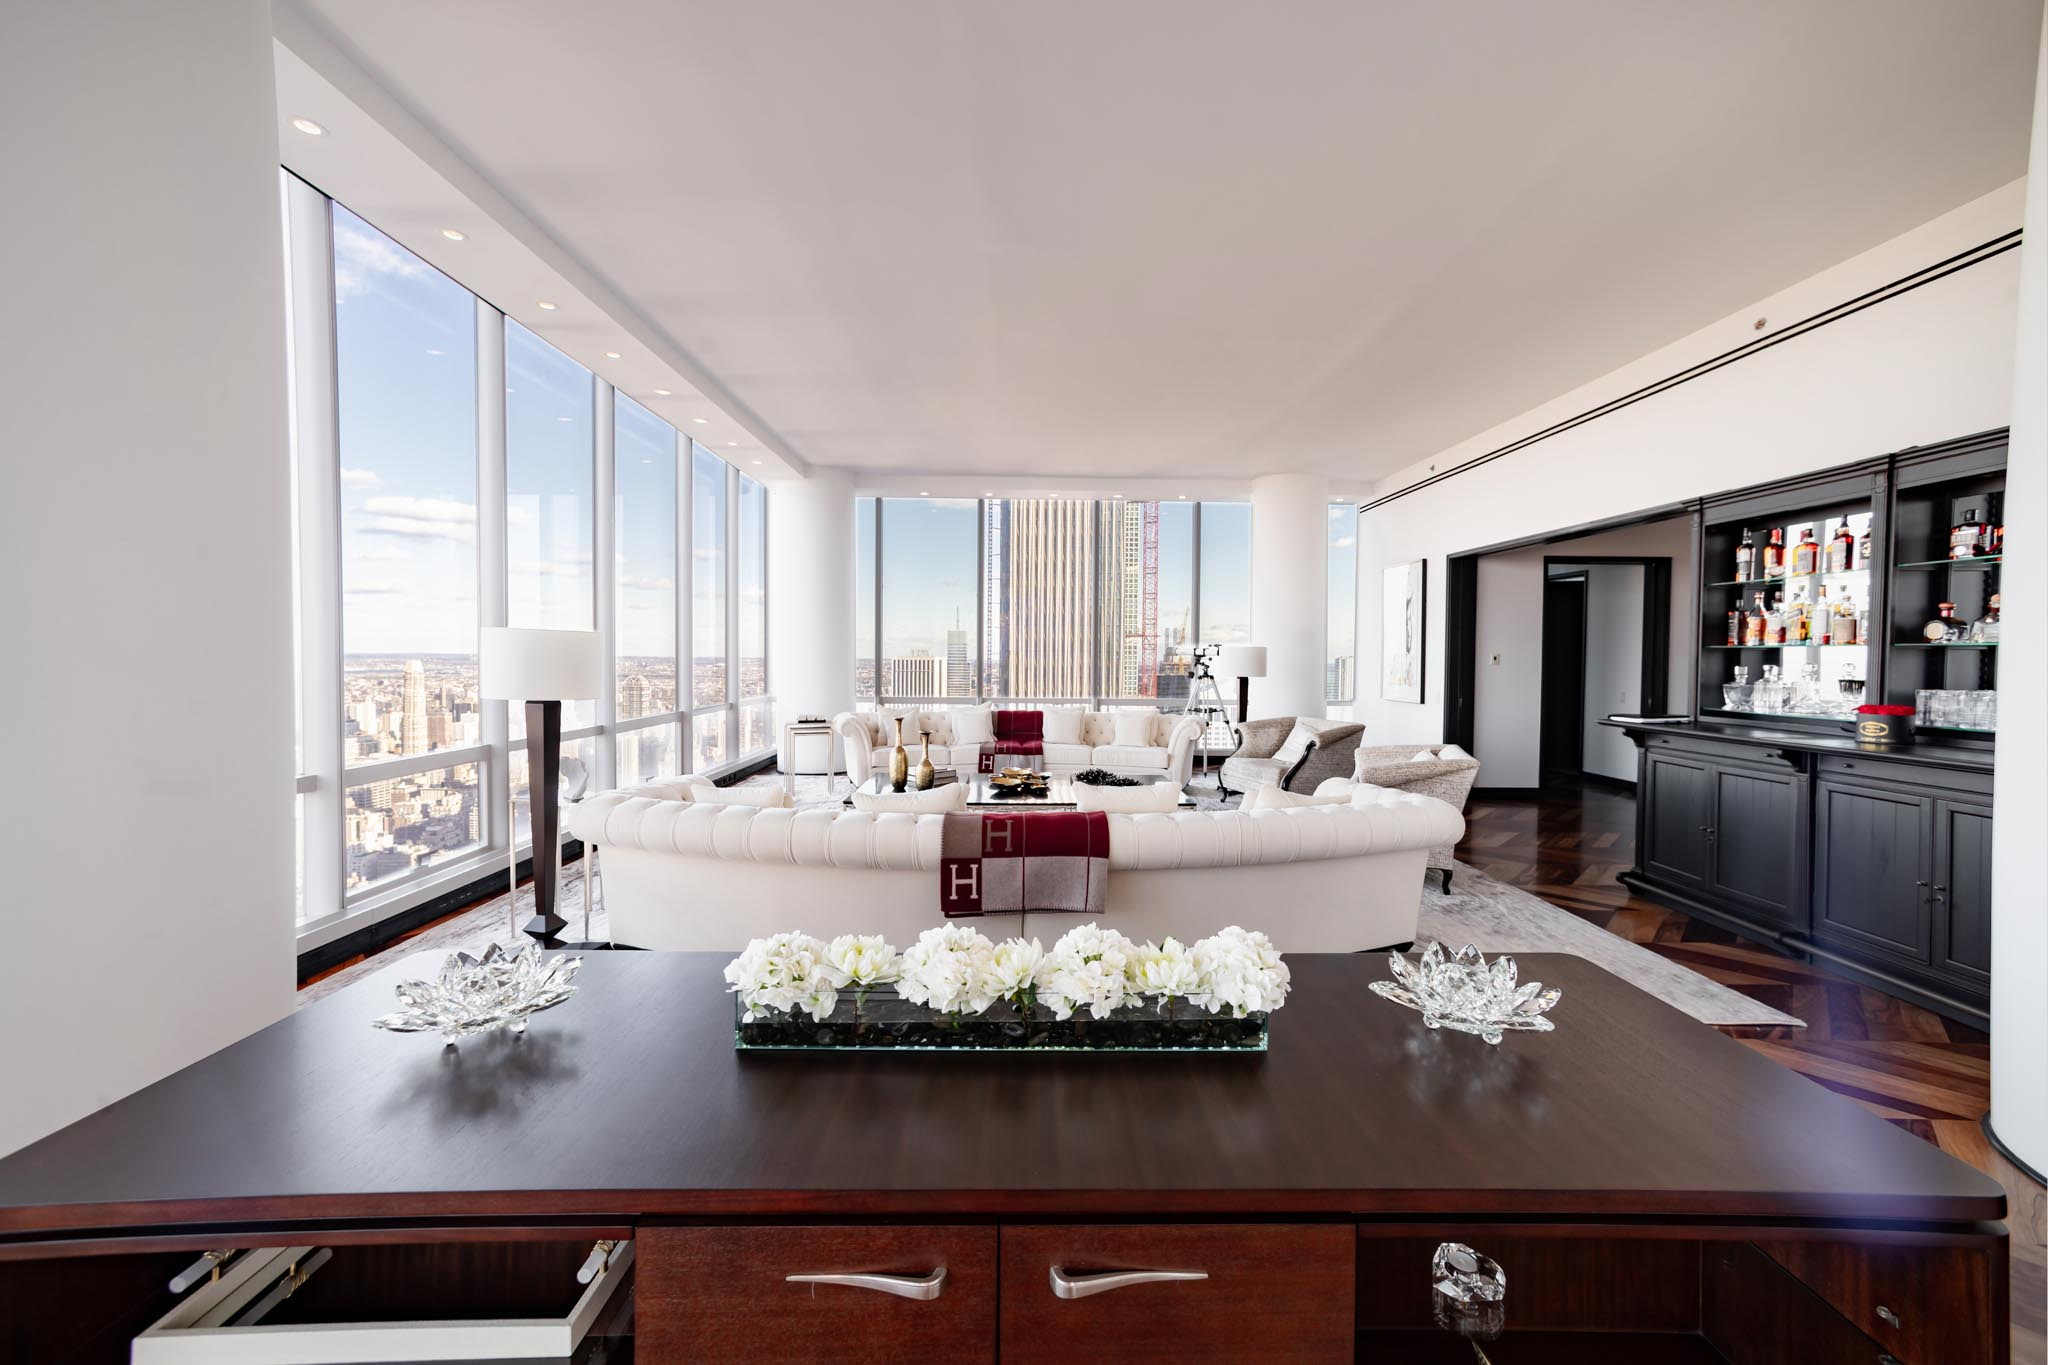 the most expensive property in New York 30M dollars